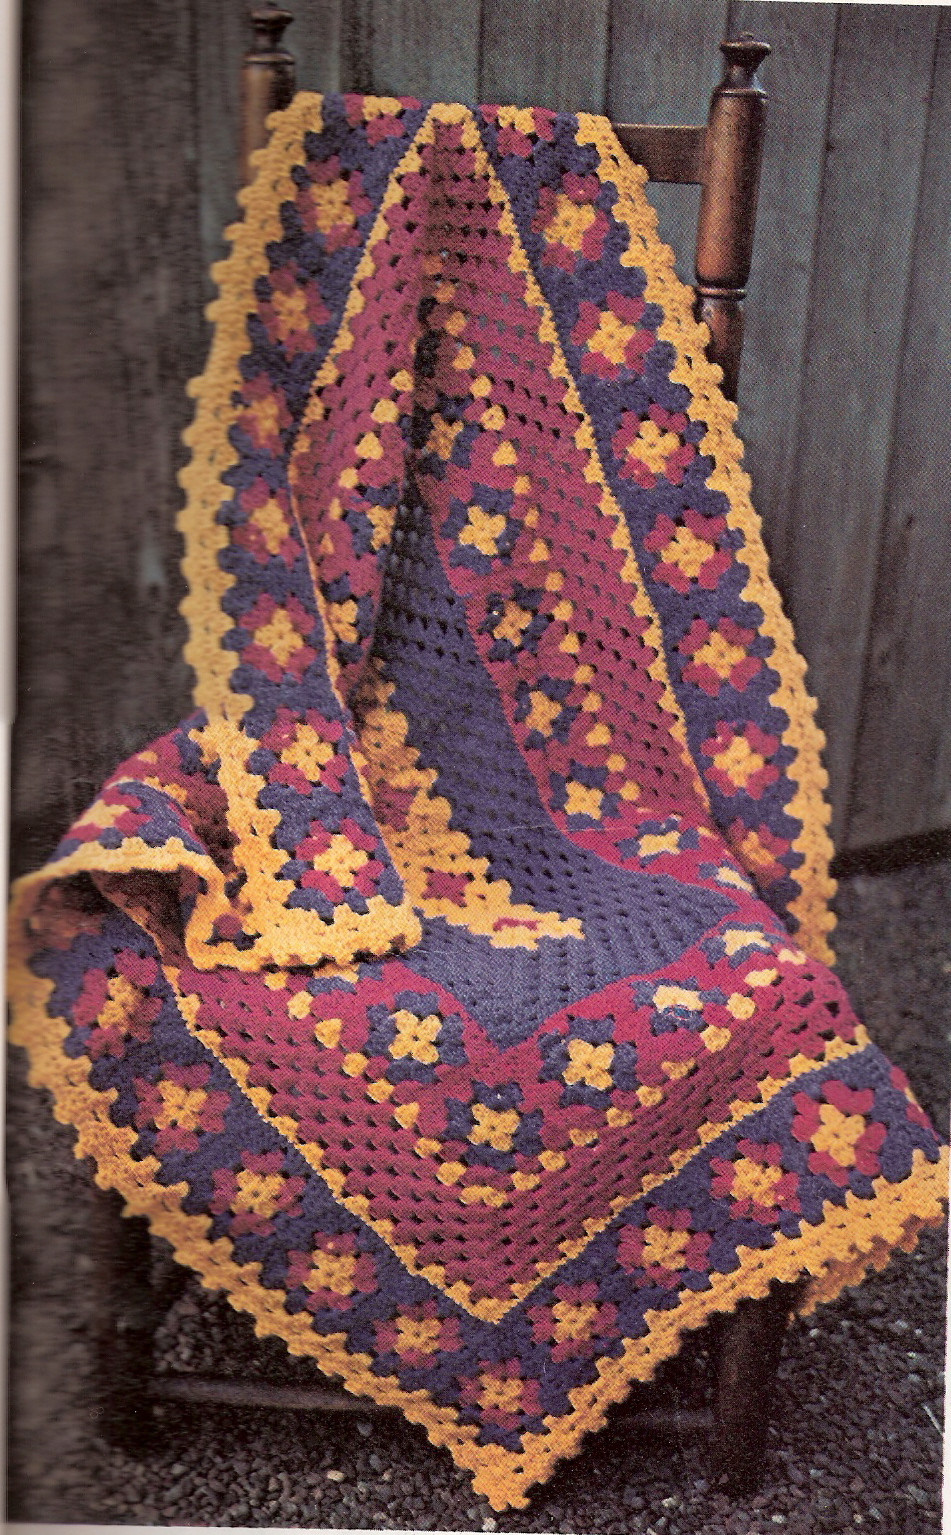 Afghan Blanket Crochet Pattern Best Of Granny Square Crib Afghan Of Incredible 43 Pictures Afghan Blanket Crochet Pattern